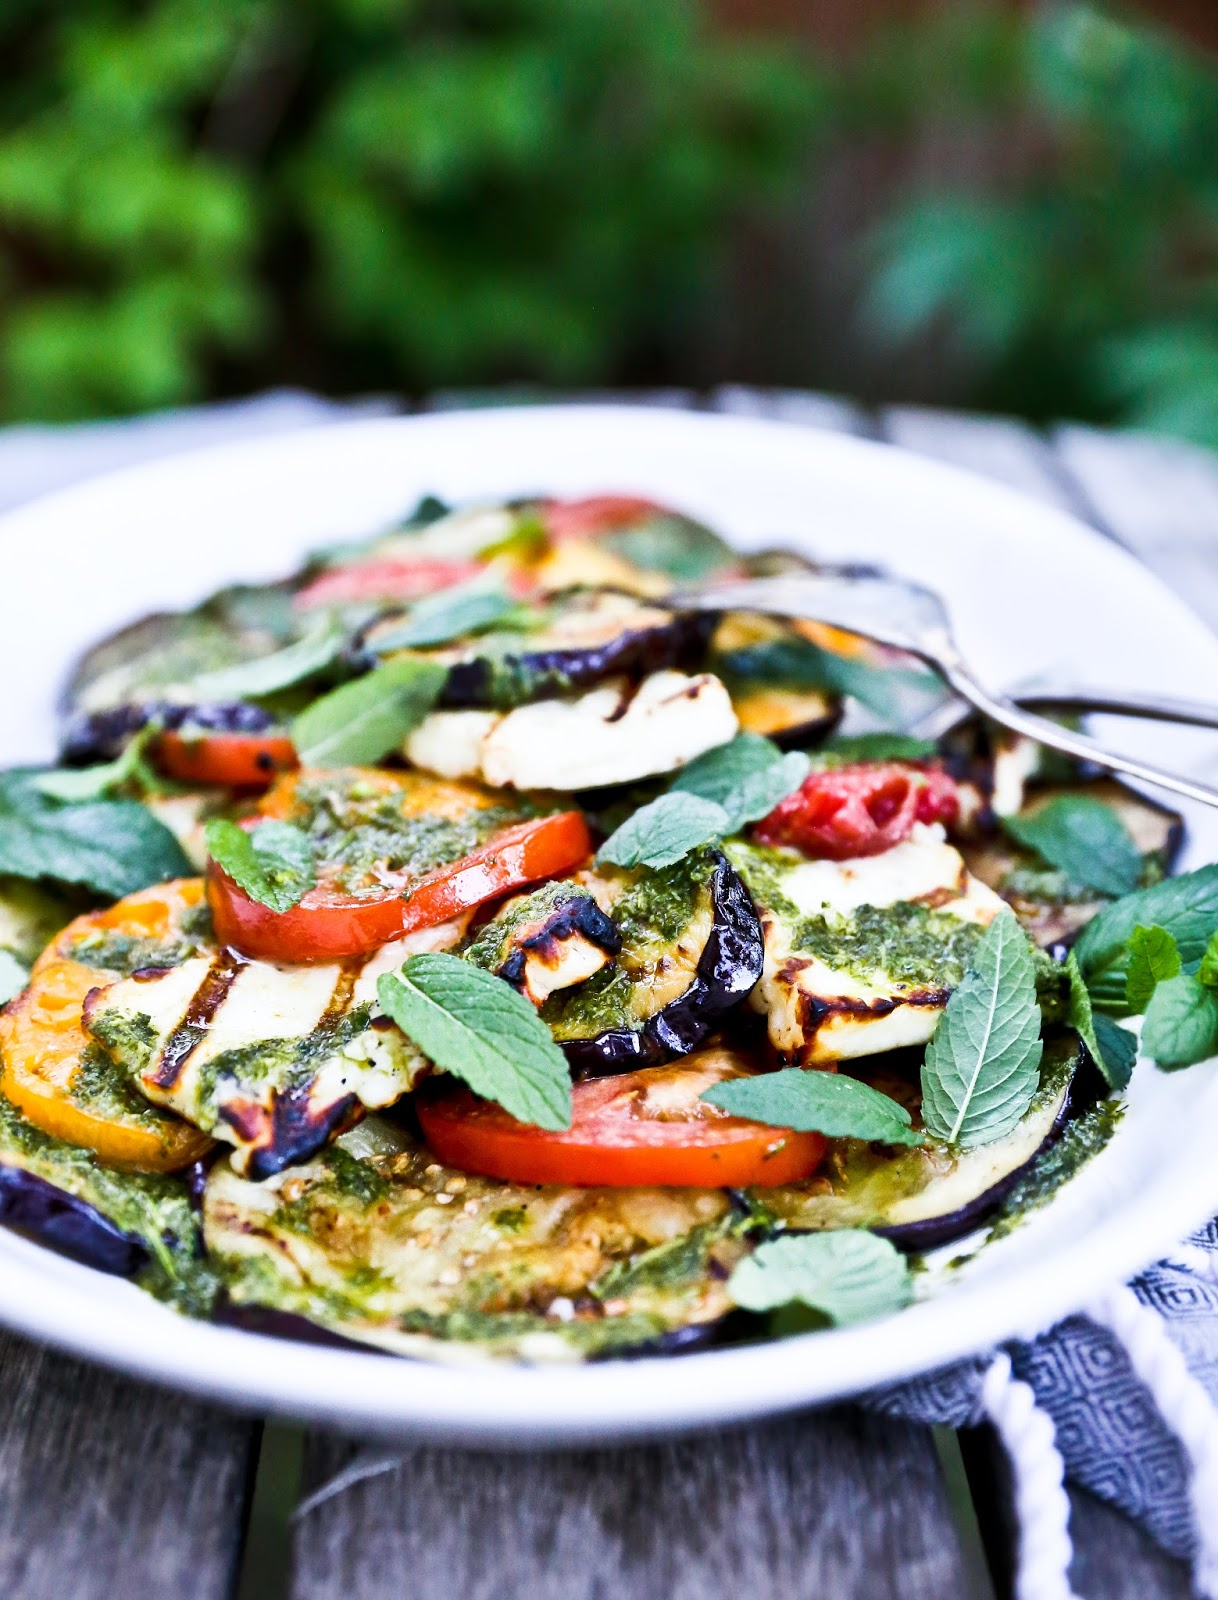 Grilled Halloumi and Eggplant Salad with Mint Dressing